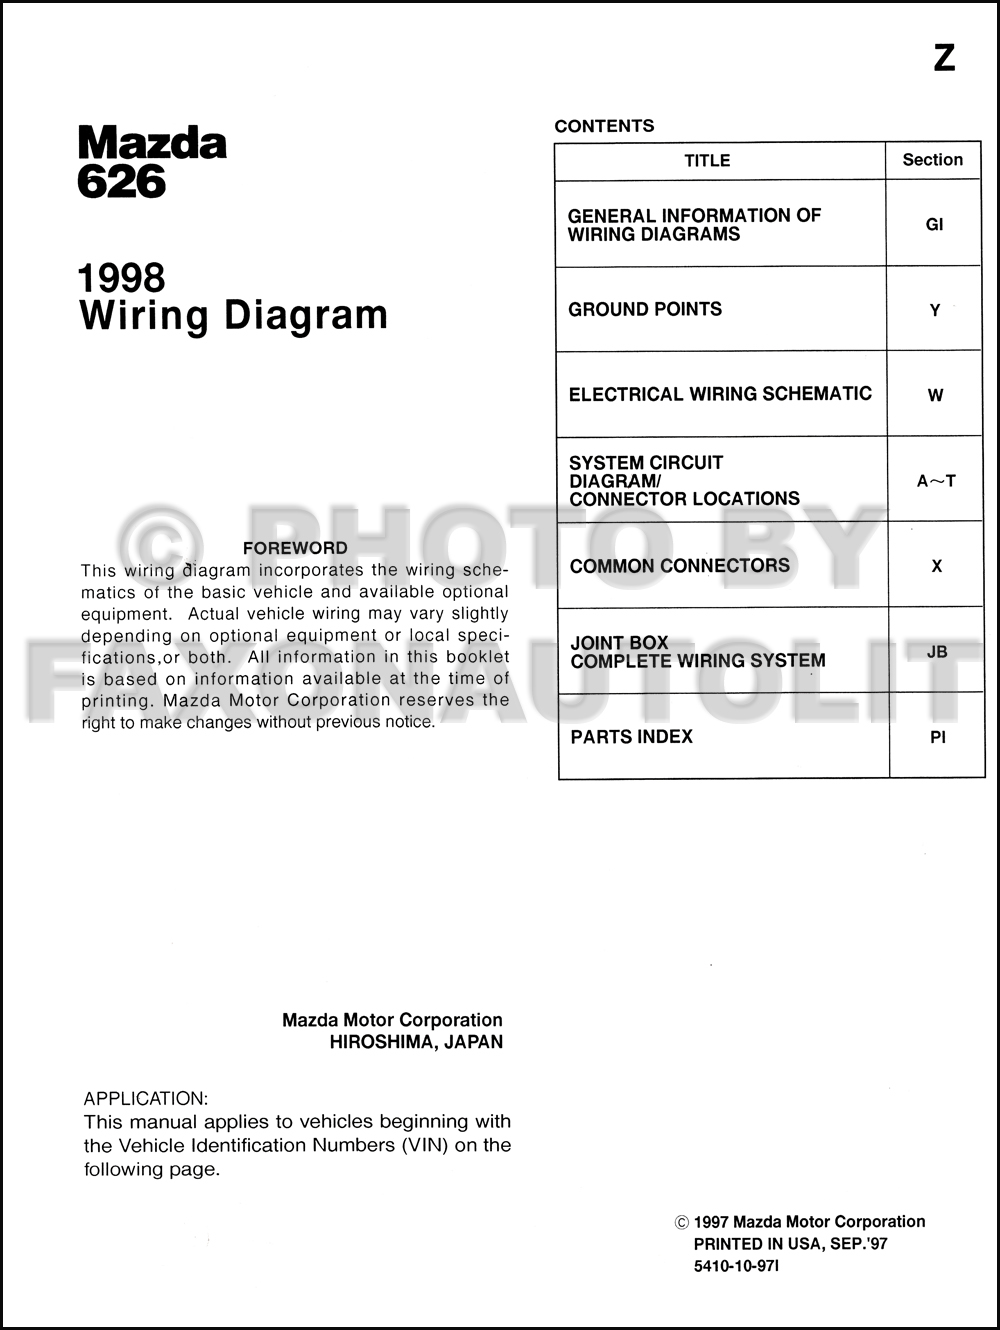 1998 Mazda 626 Wiring Diagram Manual Original